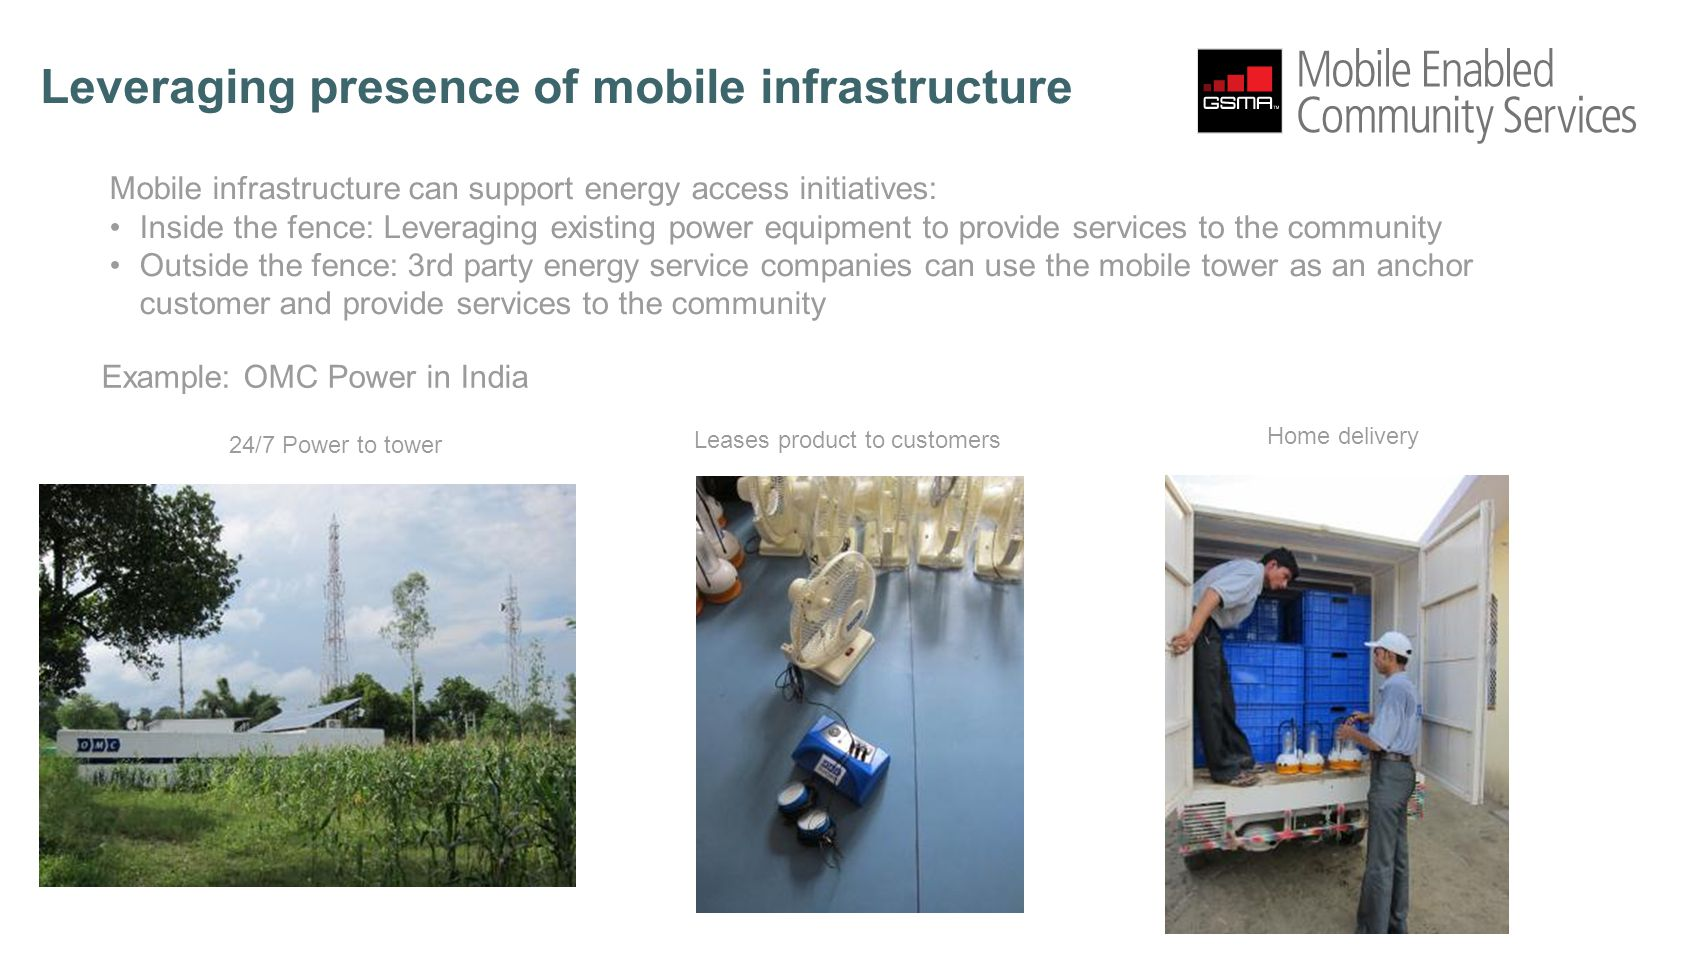 Leveraging presence of mobile infrastructure Mobile infrastructure can support energy access initiatives: Inside the fence: Leveraging existing power equipment to provide services to the community Outside the fence: 3rd party energy service companies can use the mobile tower as an anchor customer and provide services to the community 24/7 Power to tower Example: OMC Power in India Leases product to customers Home delivery